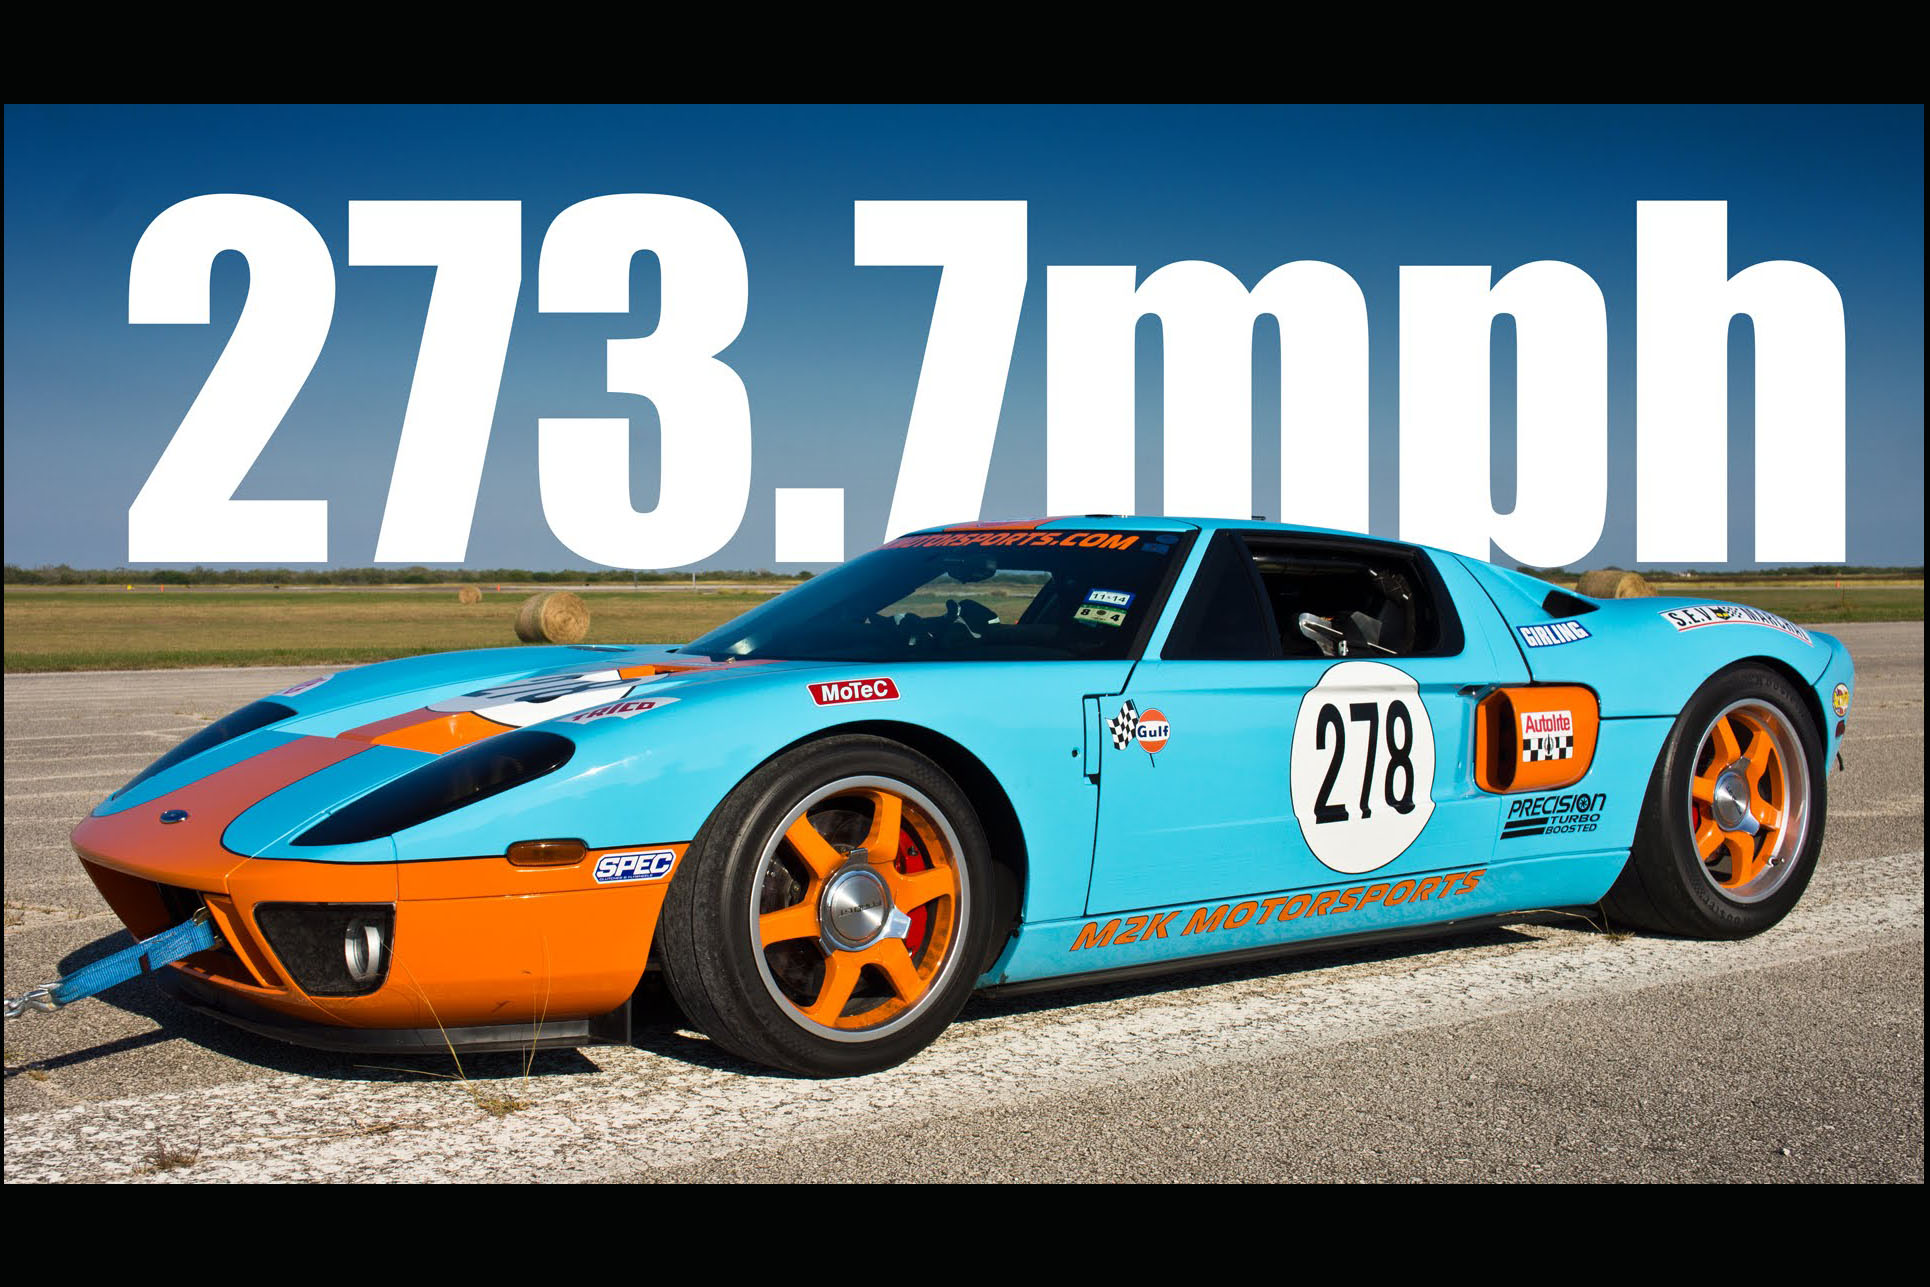 Video: This Ford GT does 273.7mph in a mile. Forget what you thought